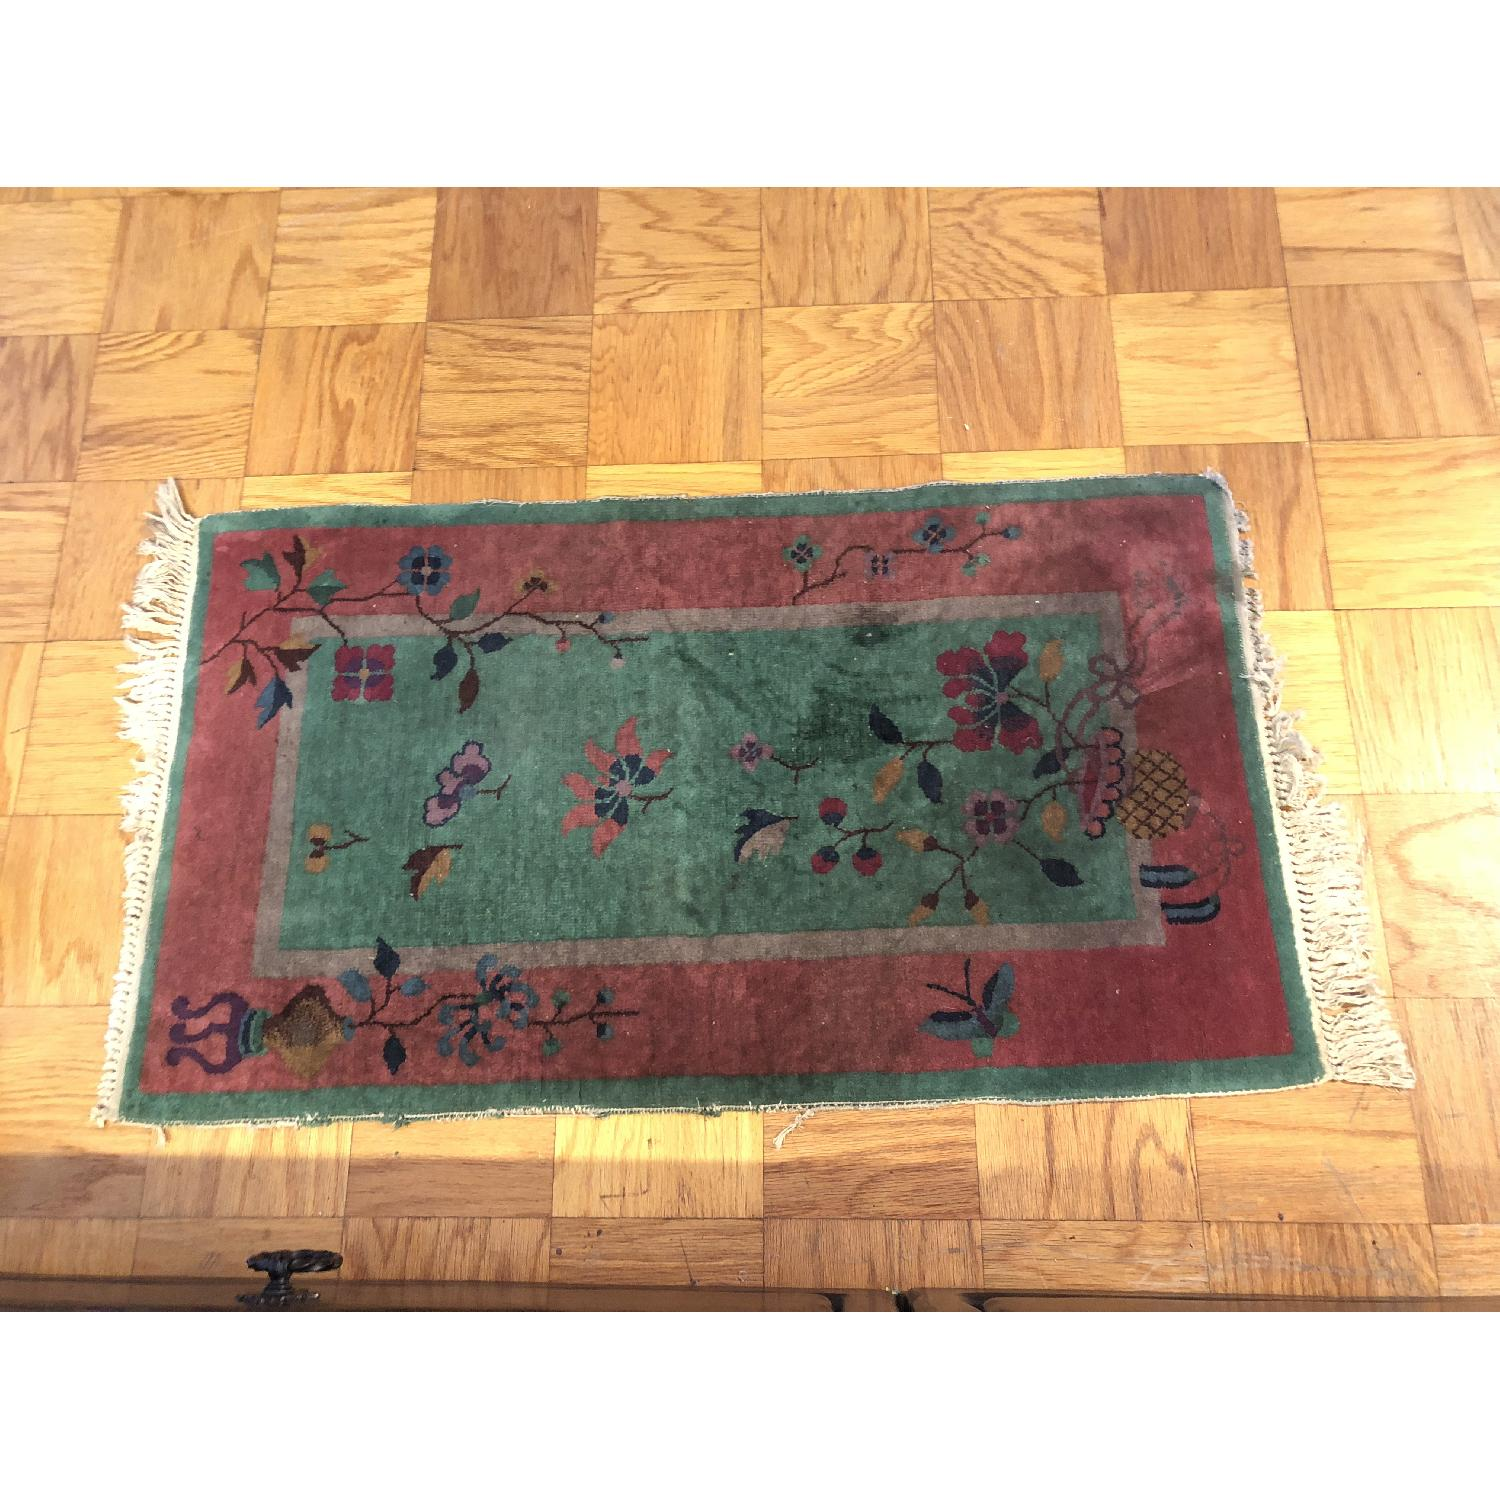 Pink & Green Small Rug w/ Flowers Pattern - image-2